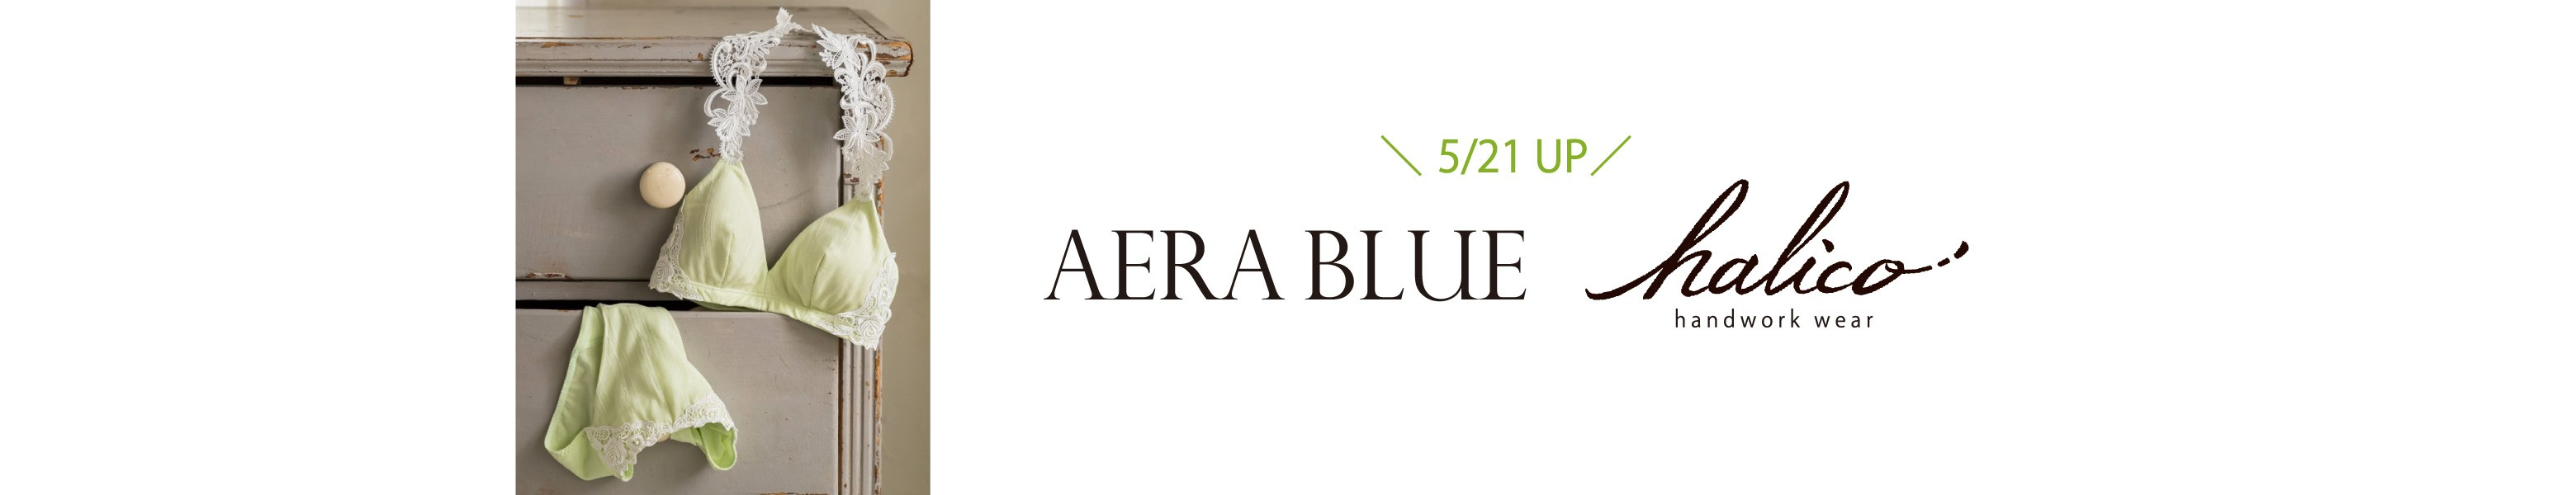 \5/21UP/ AERA BLUE   halico